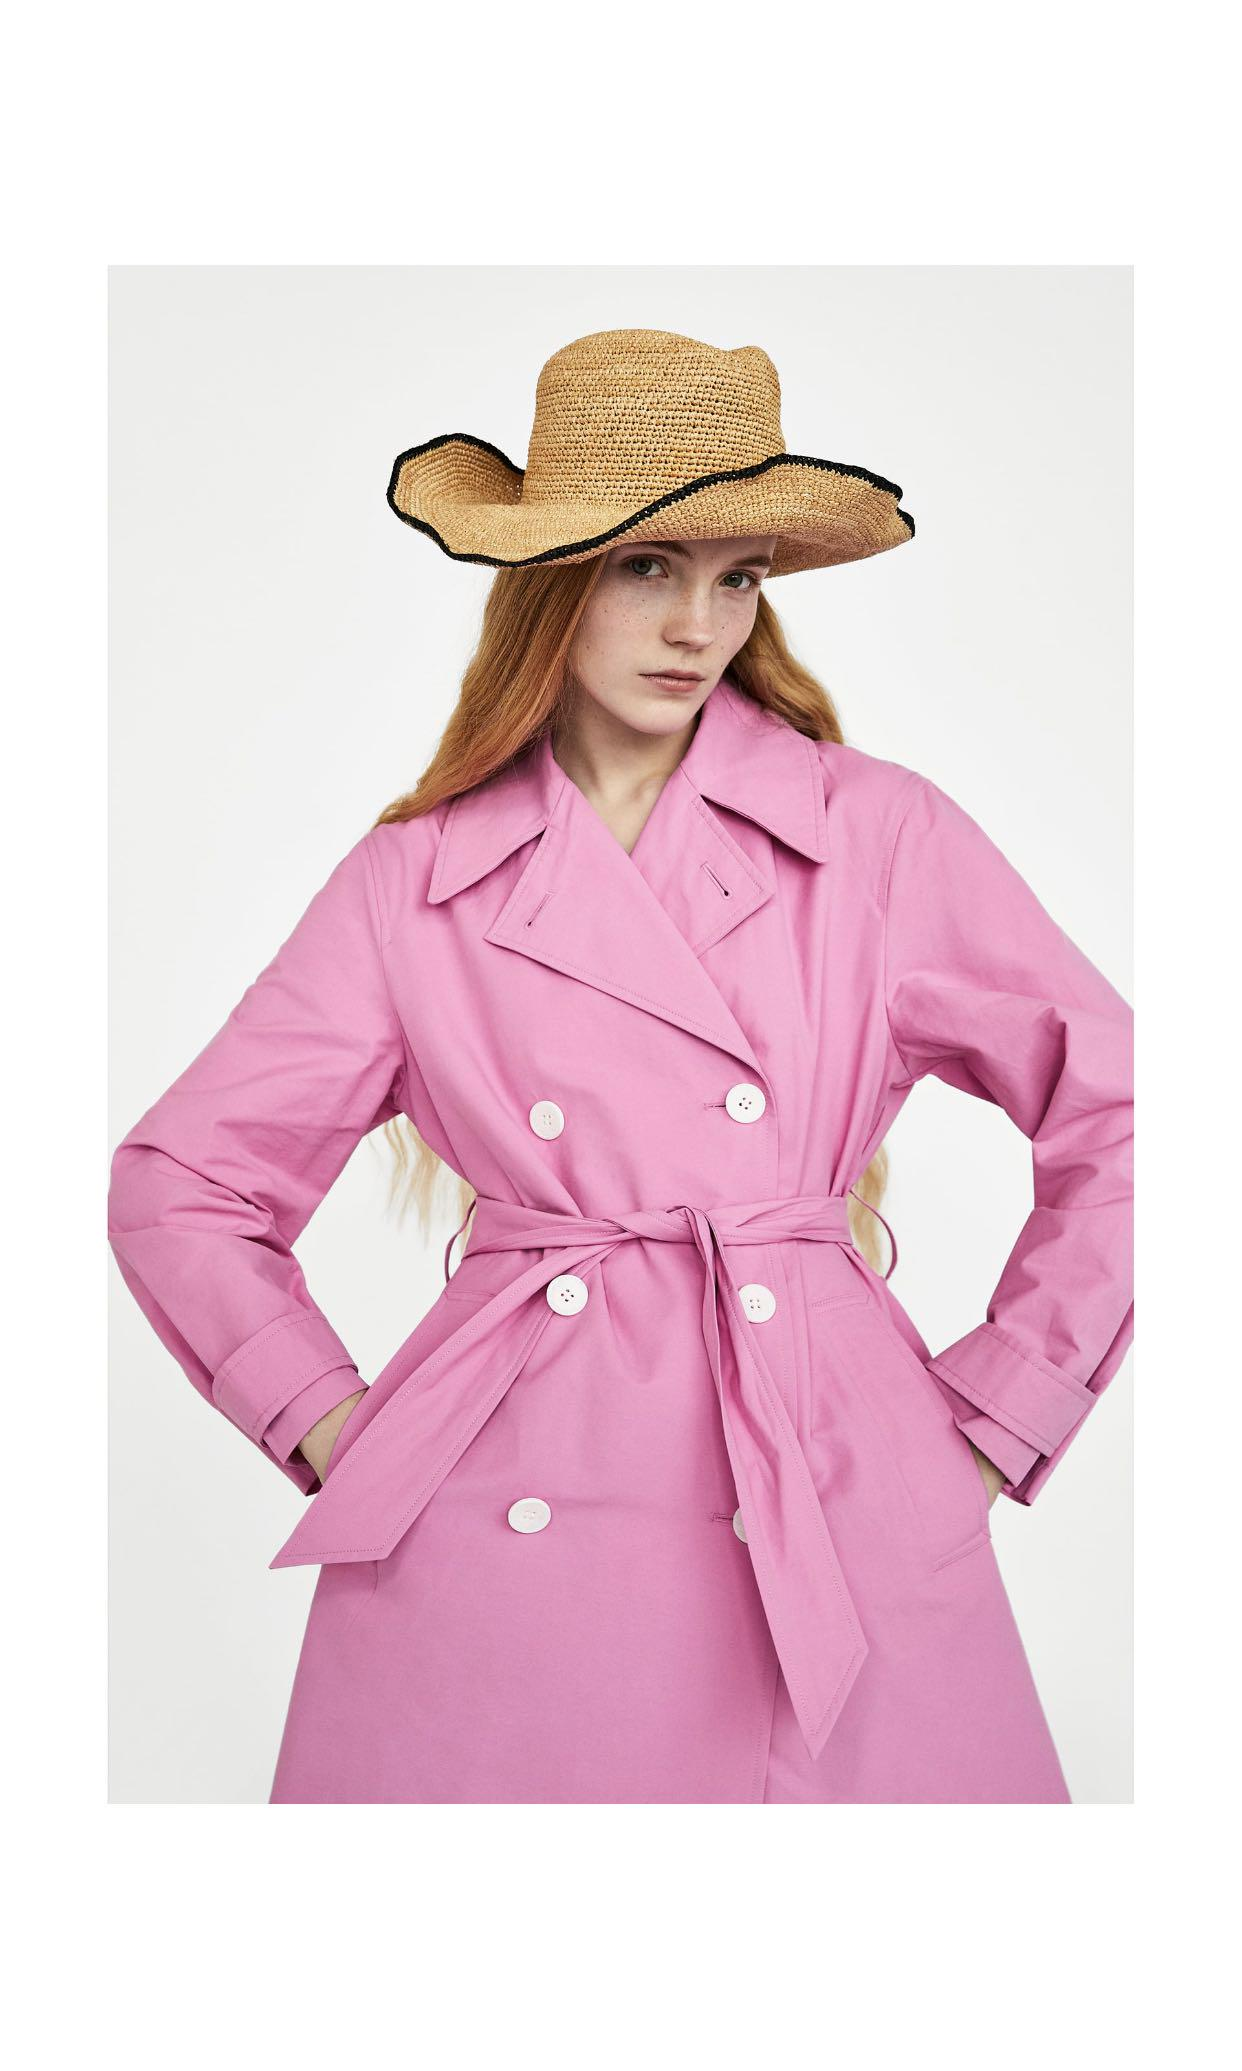 exceptional range of colors new selection beautiful style Zara pink trench coat, Women's Fashion, Clothes, Outerwear ...